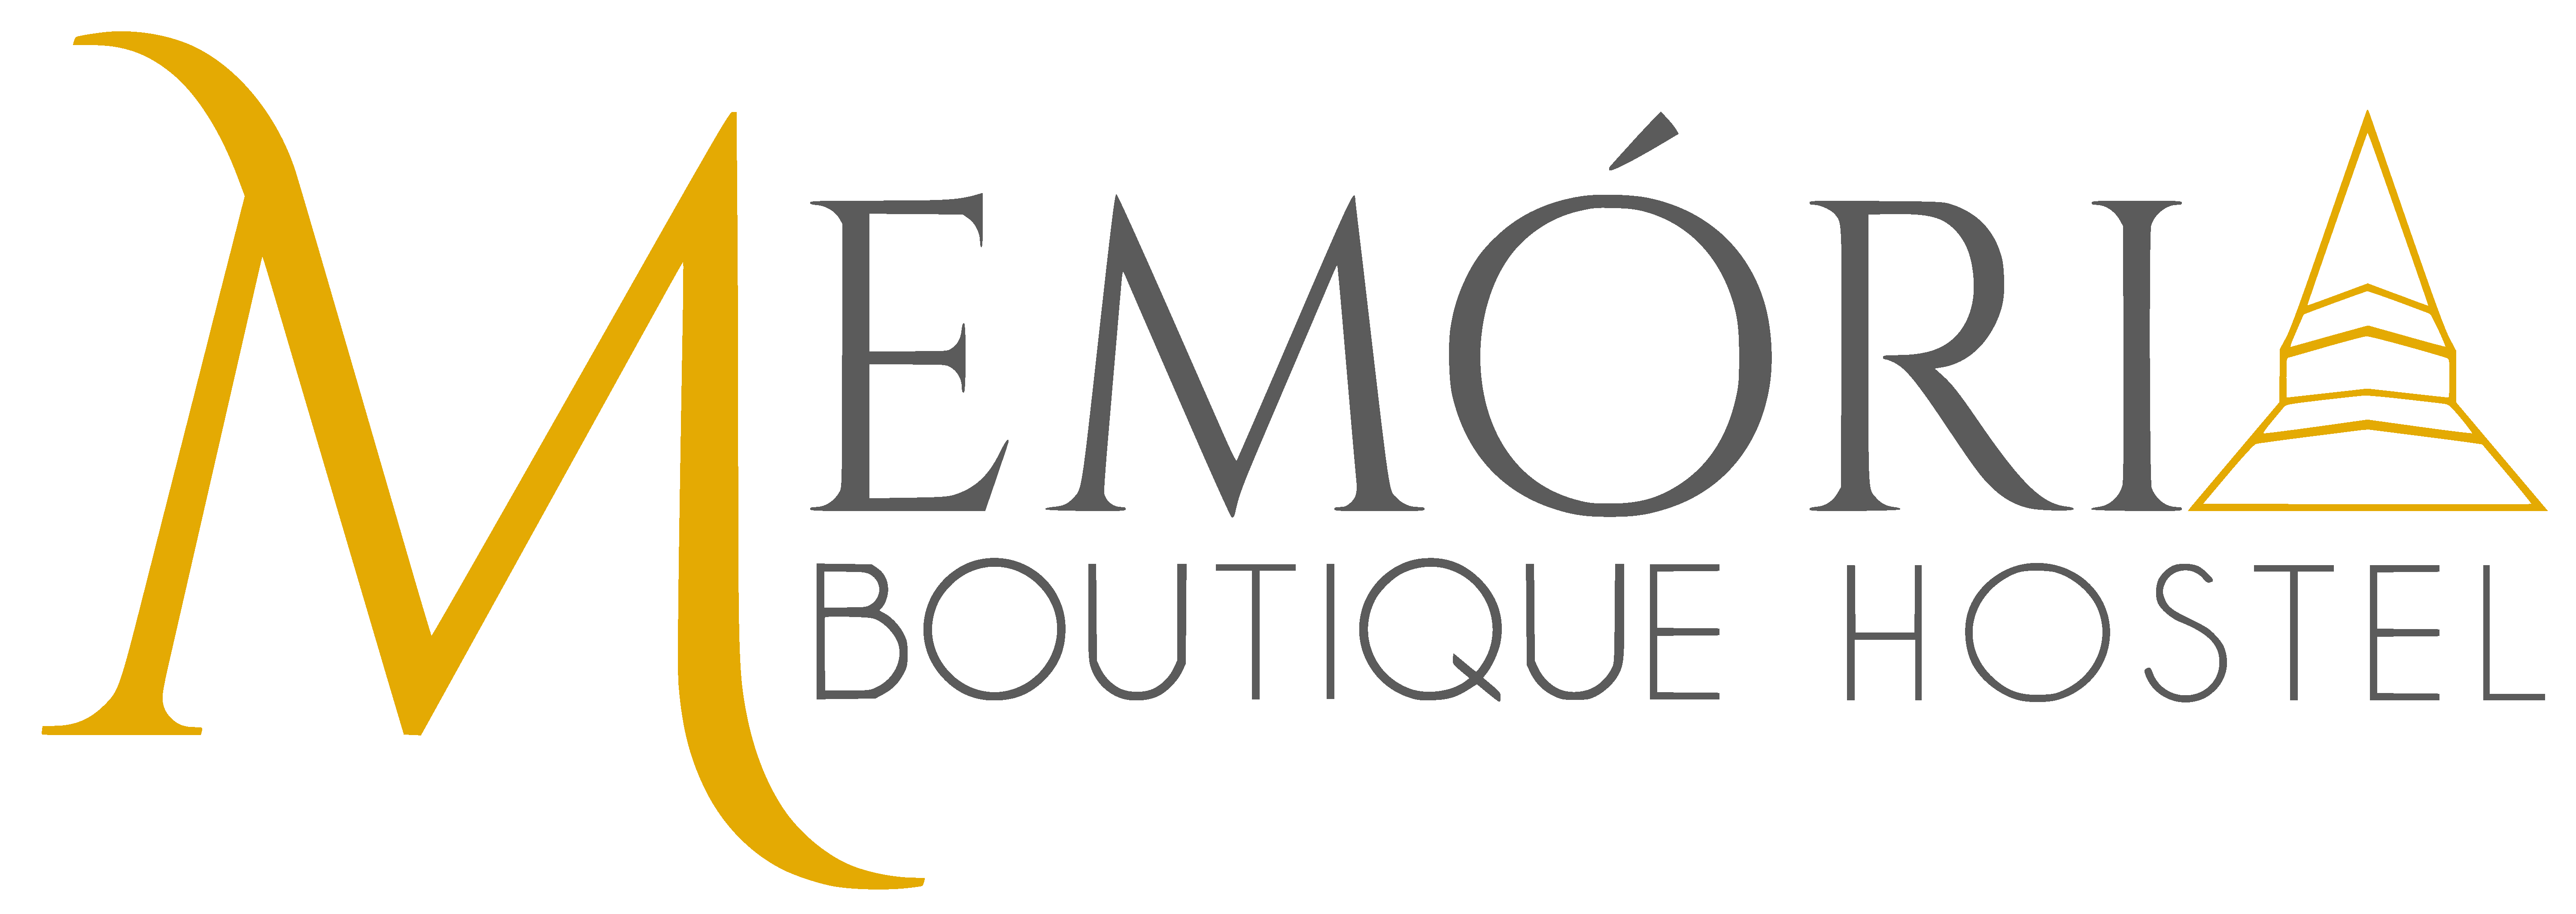 memoria boutique hostel